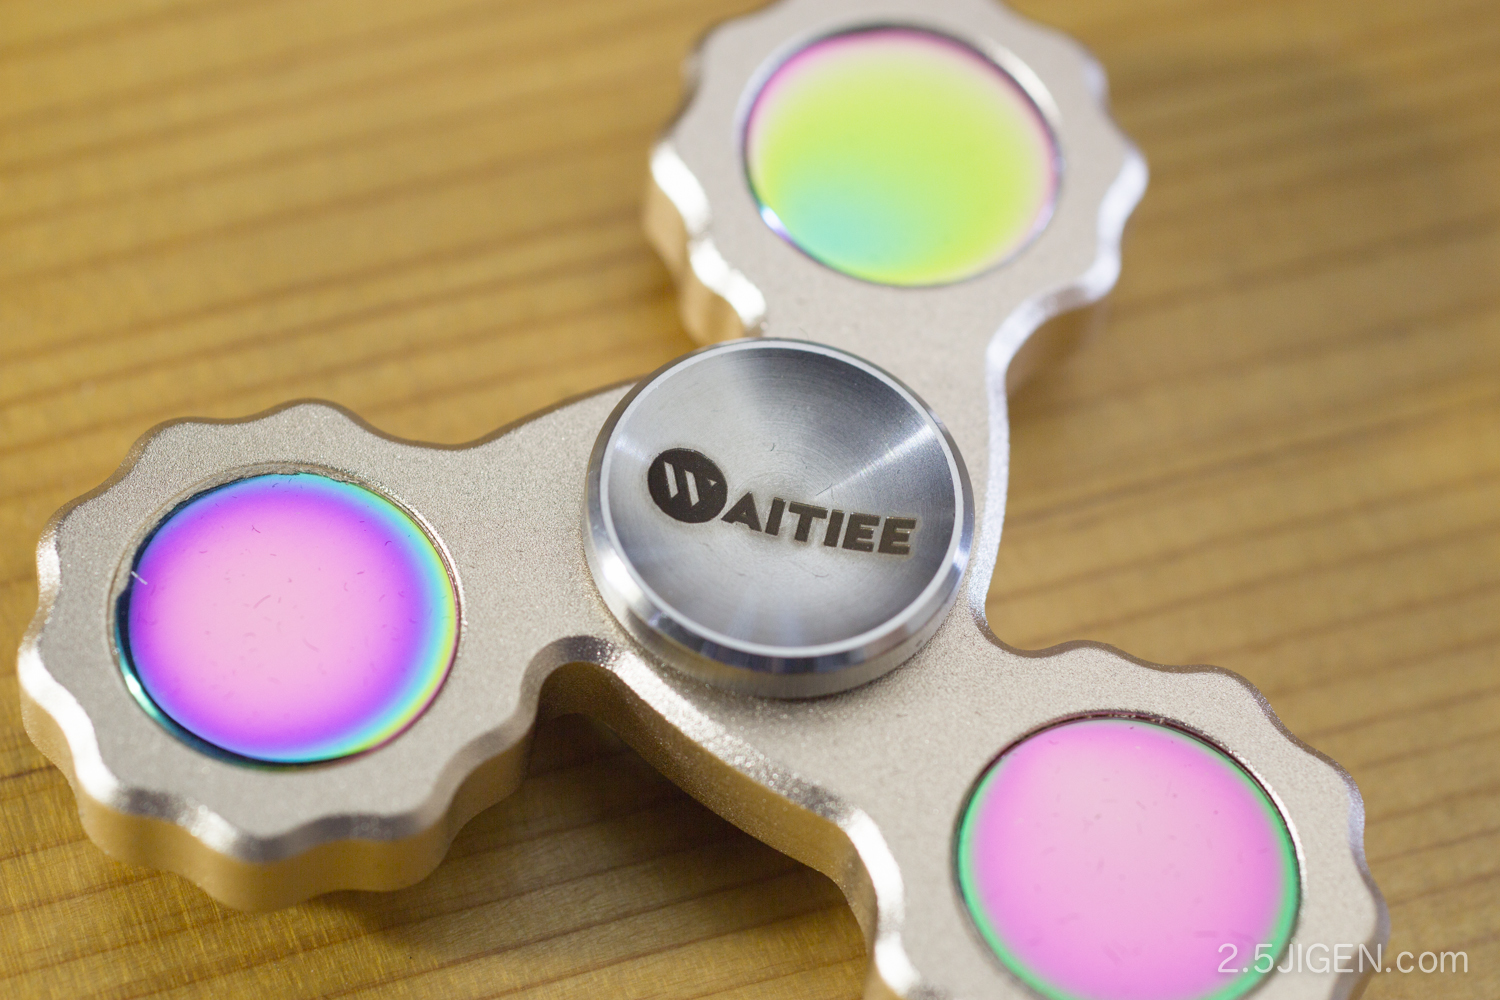 Waitiee Hand spinner